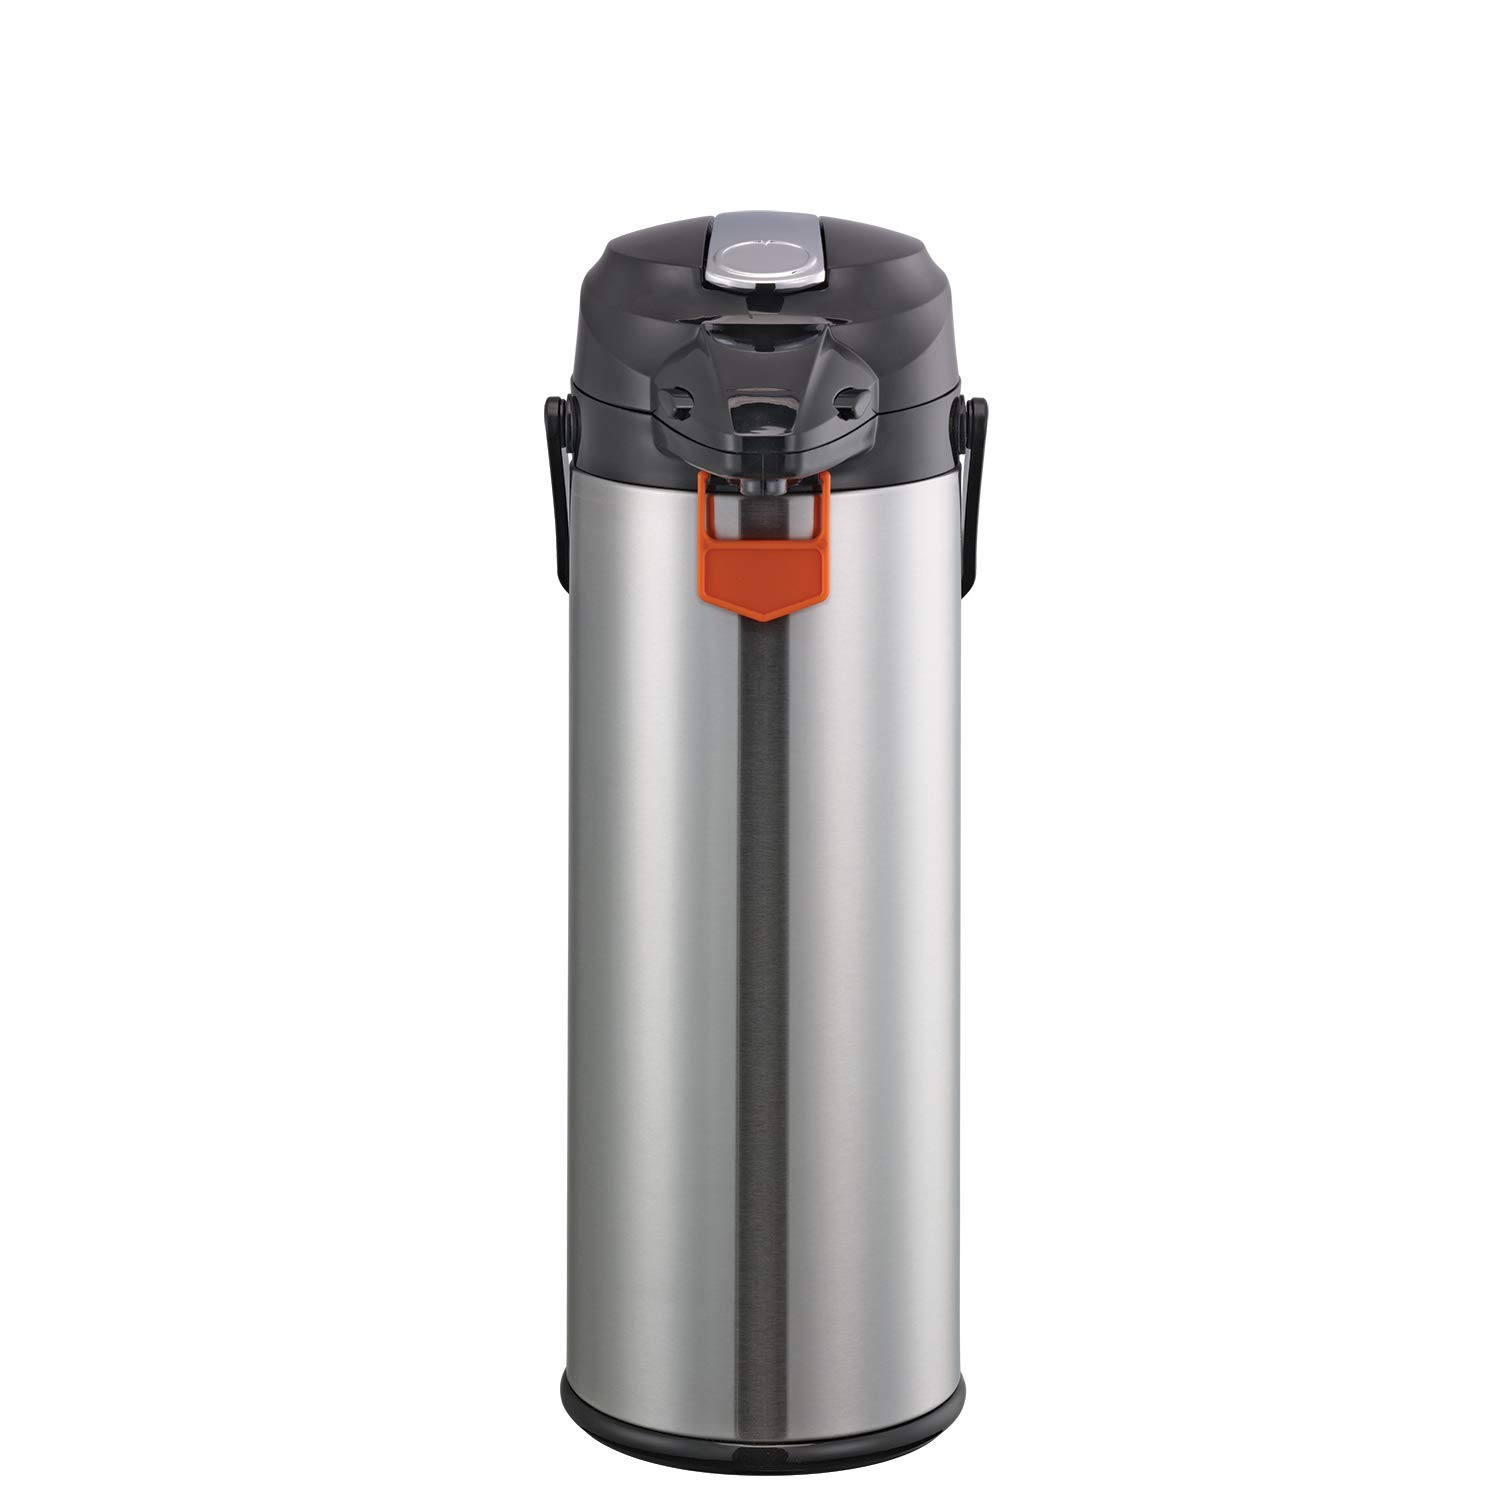 Service Ideas ENALG30S Airpot with Lever, Glass and Stainless Steel, NSF Listed, 3.0 L by Service Ideas (Image #1)